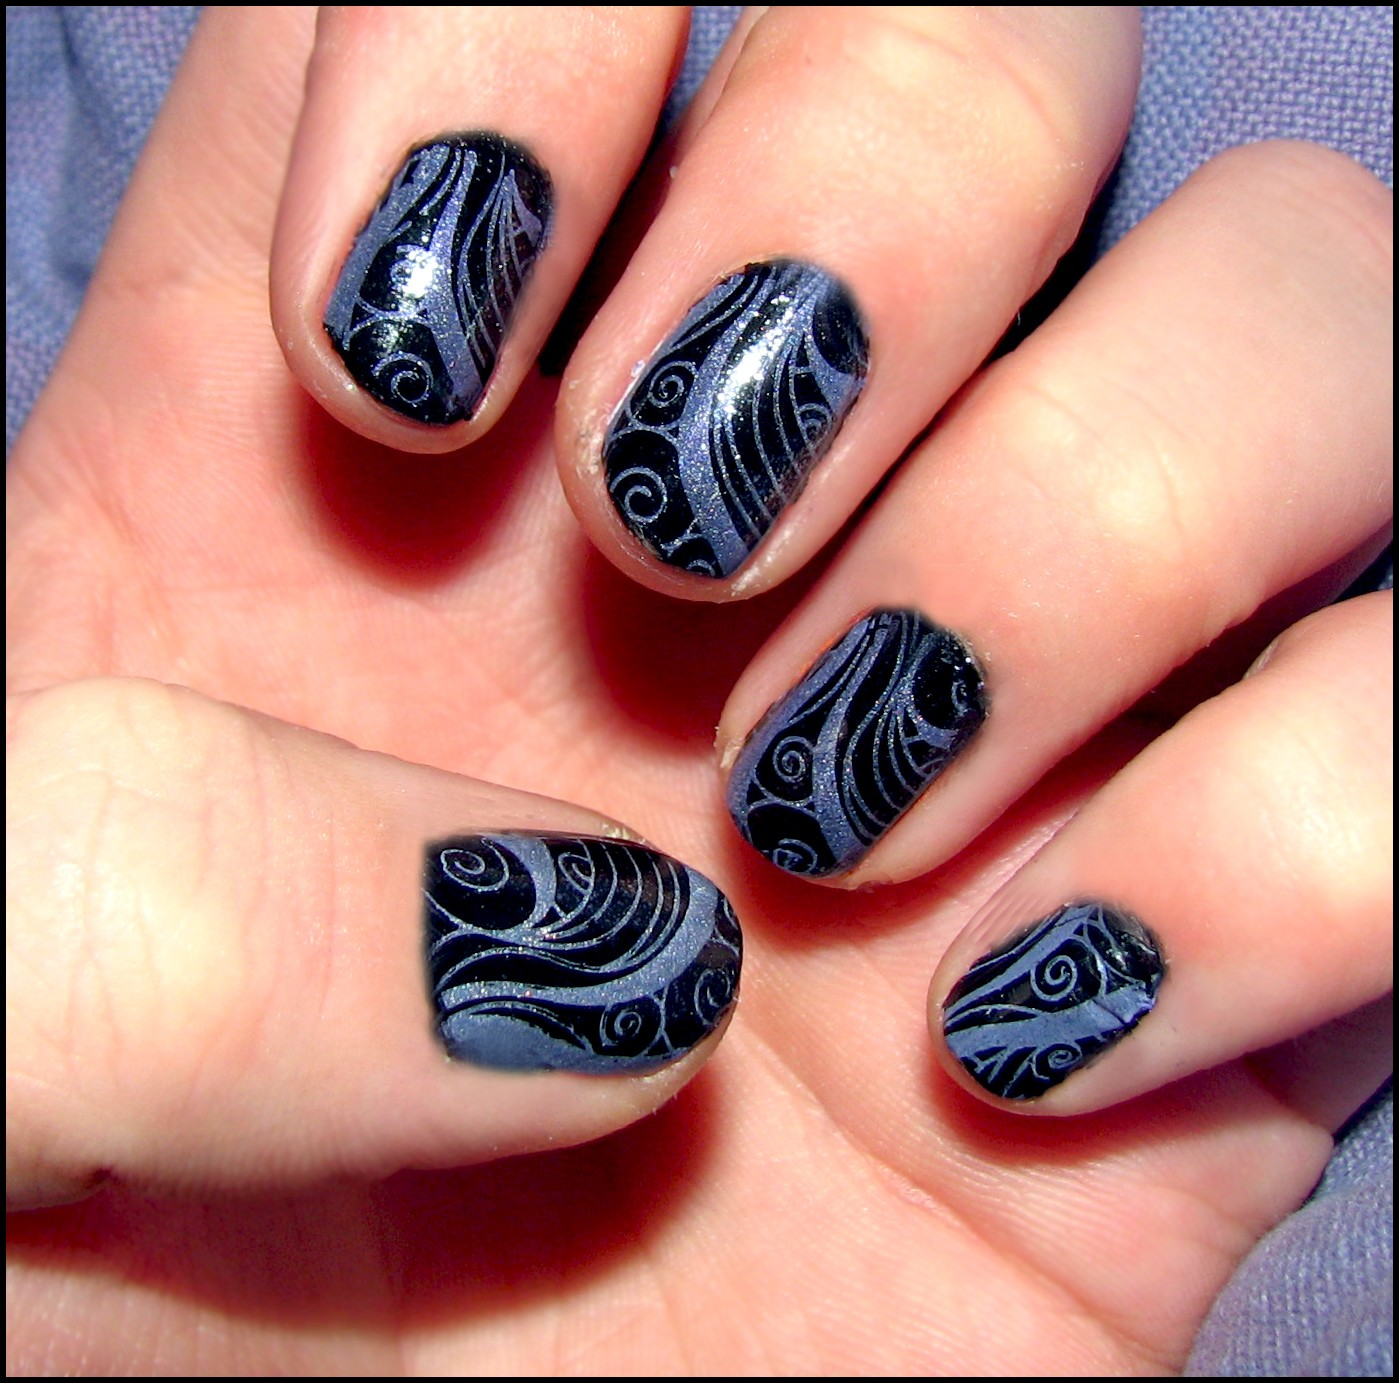 Nail Art Ideas: 2014 Nail Art Ideas For Prom